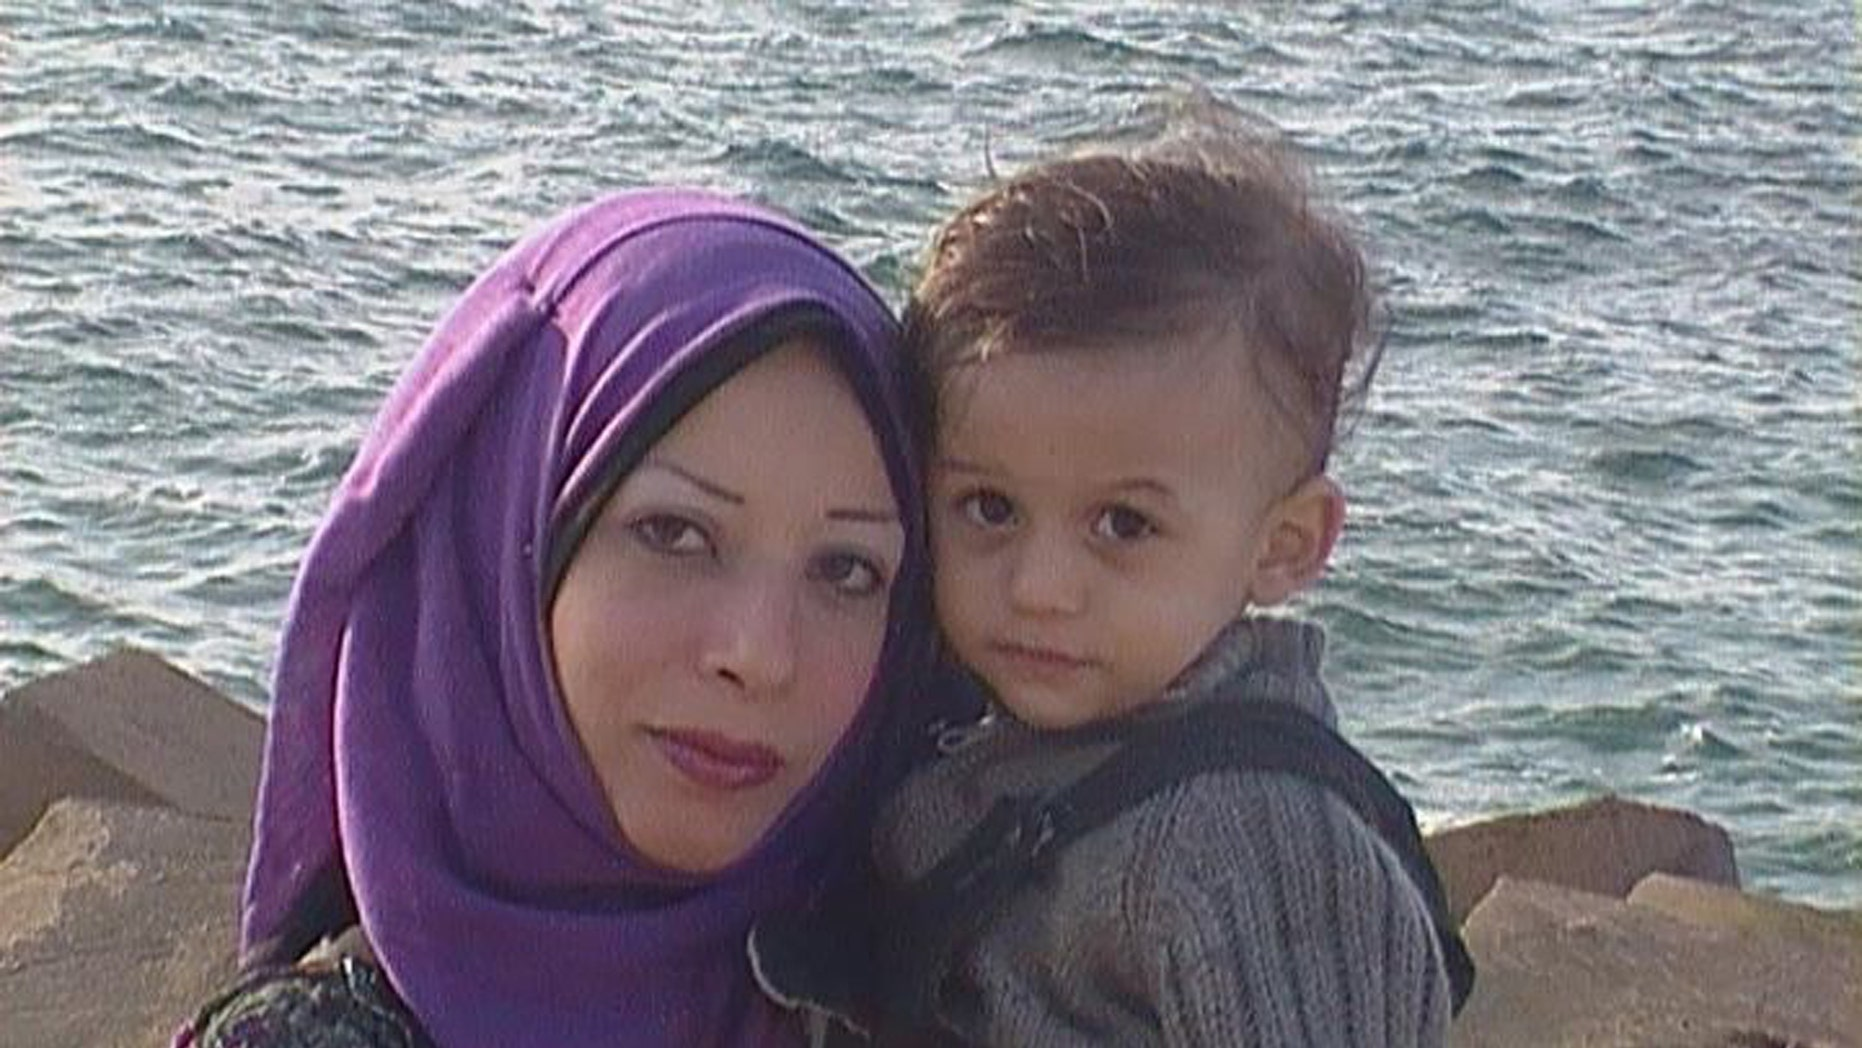 Mona al-Gharib, left, poses for a photo with an unidentified child. The 25-year-old pregnant wife of a Syrian dissident and journalist has been abducted in Egypt by Syrian intelligence agents, her husband said.